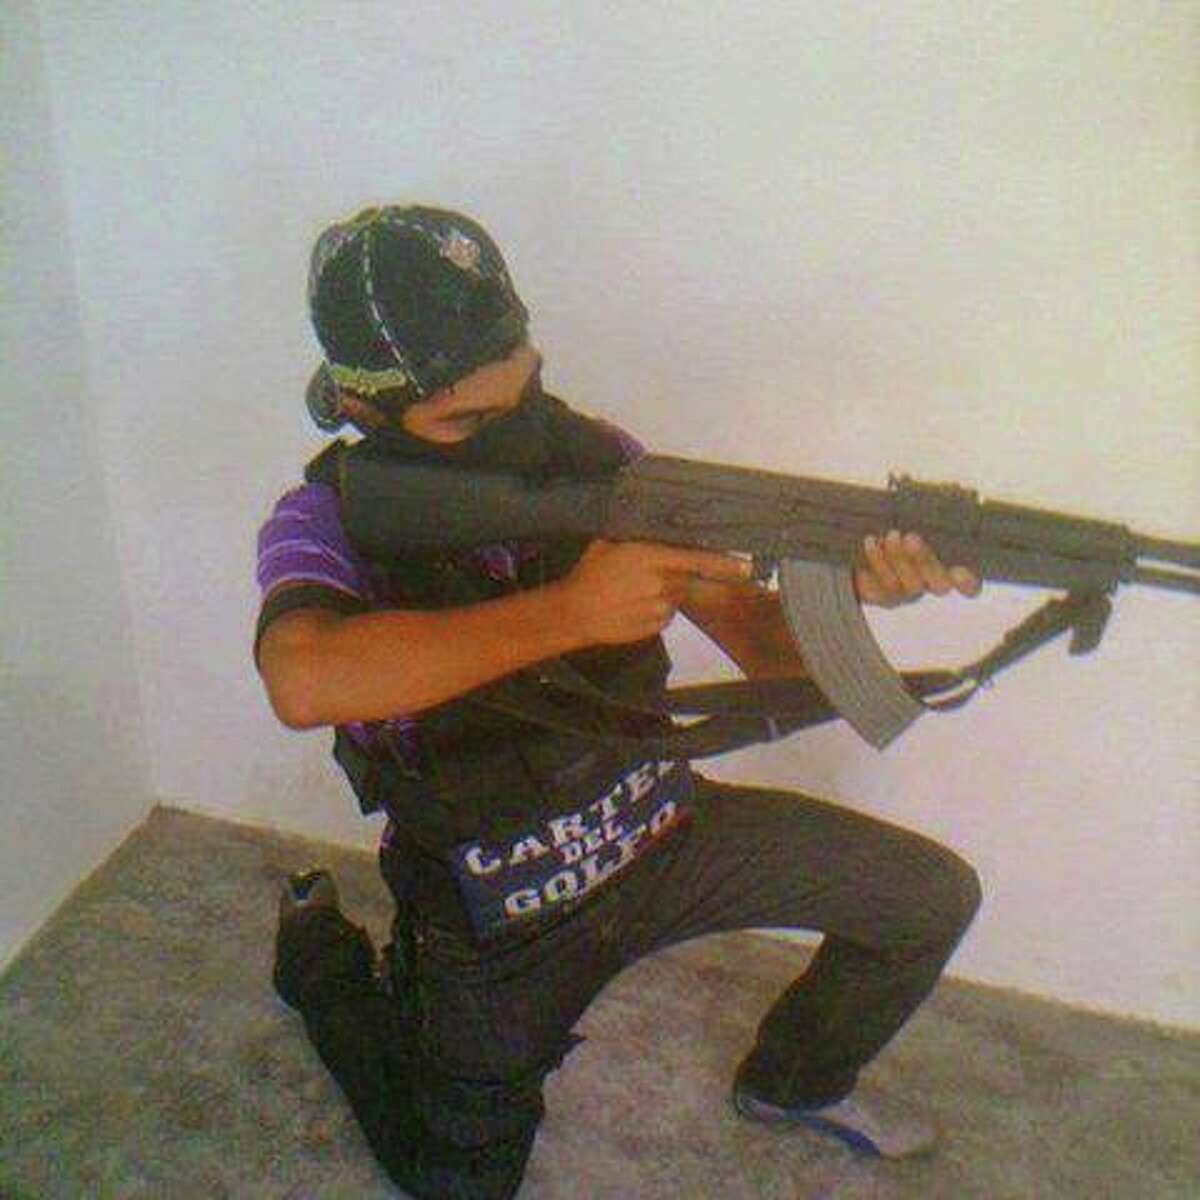 Photos published by El Blog del Narco purport to show gunmen with the Gulf Cartel showing off weapons in Tamaulipas, Mexico.